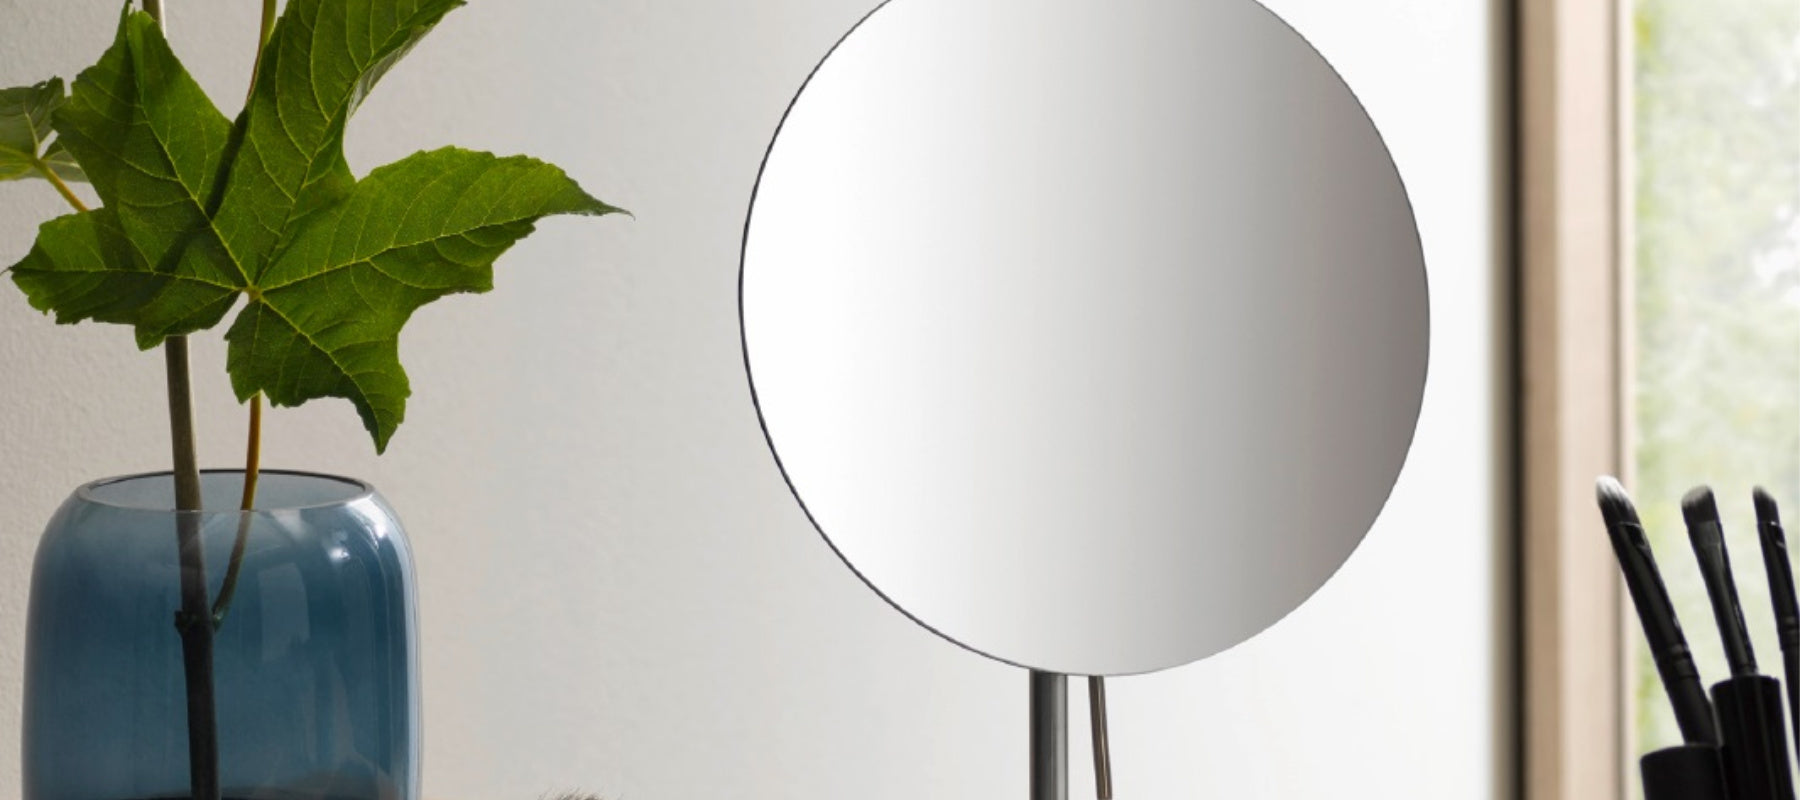 Frasco Stainless Steel Tabletop Mirrors